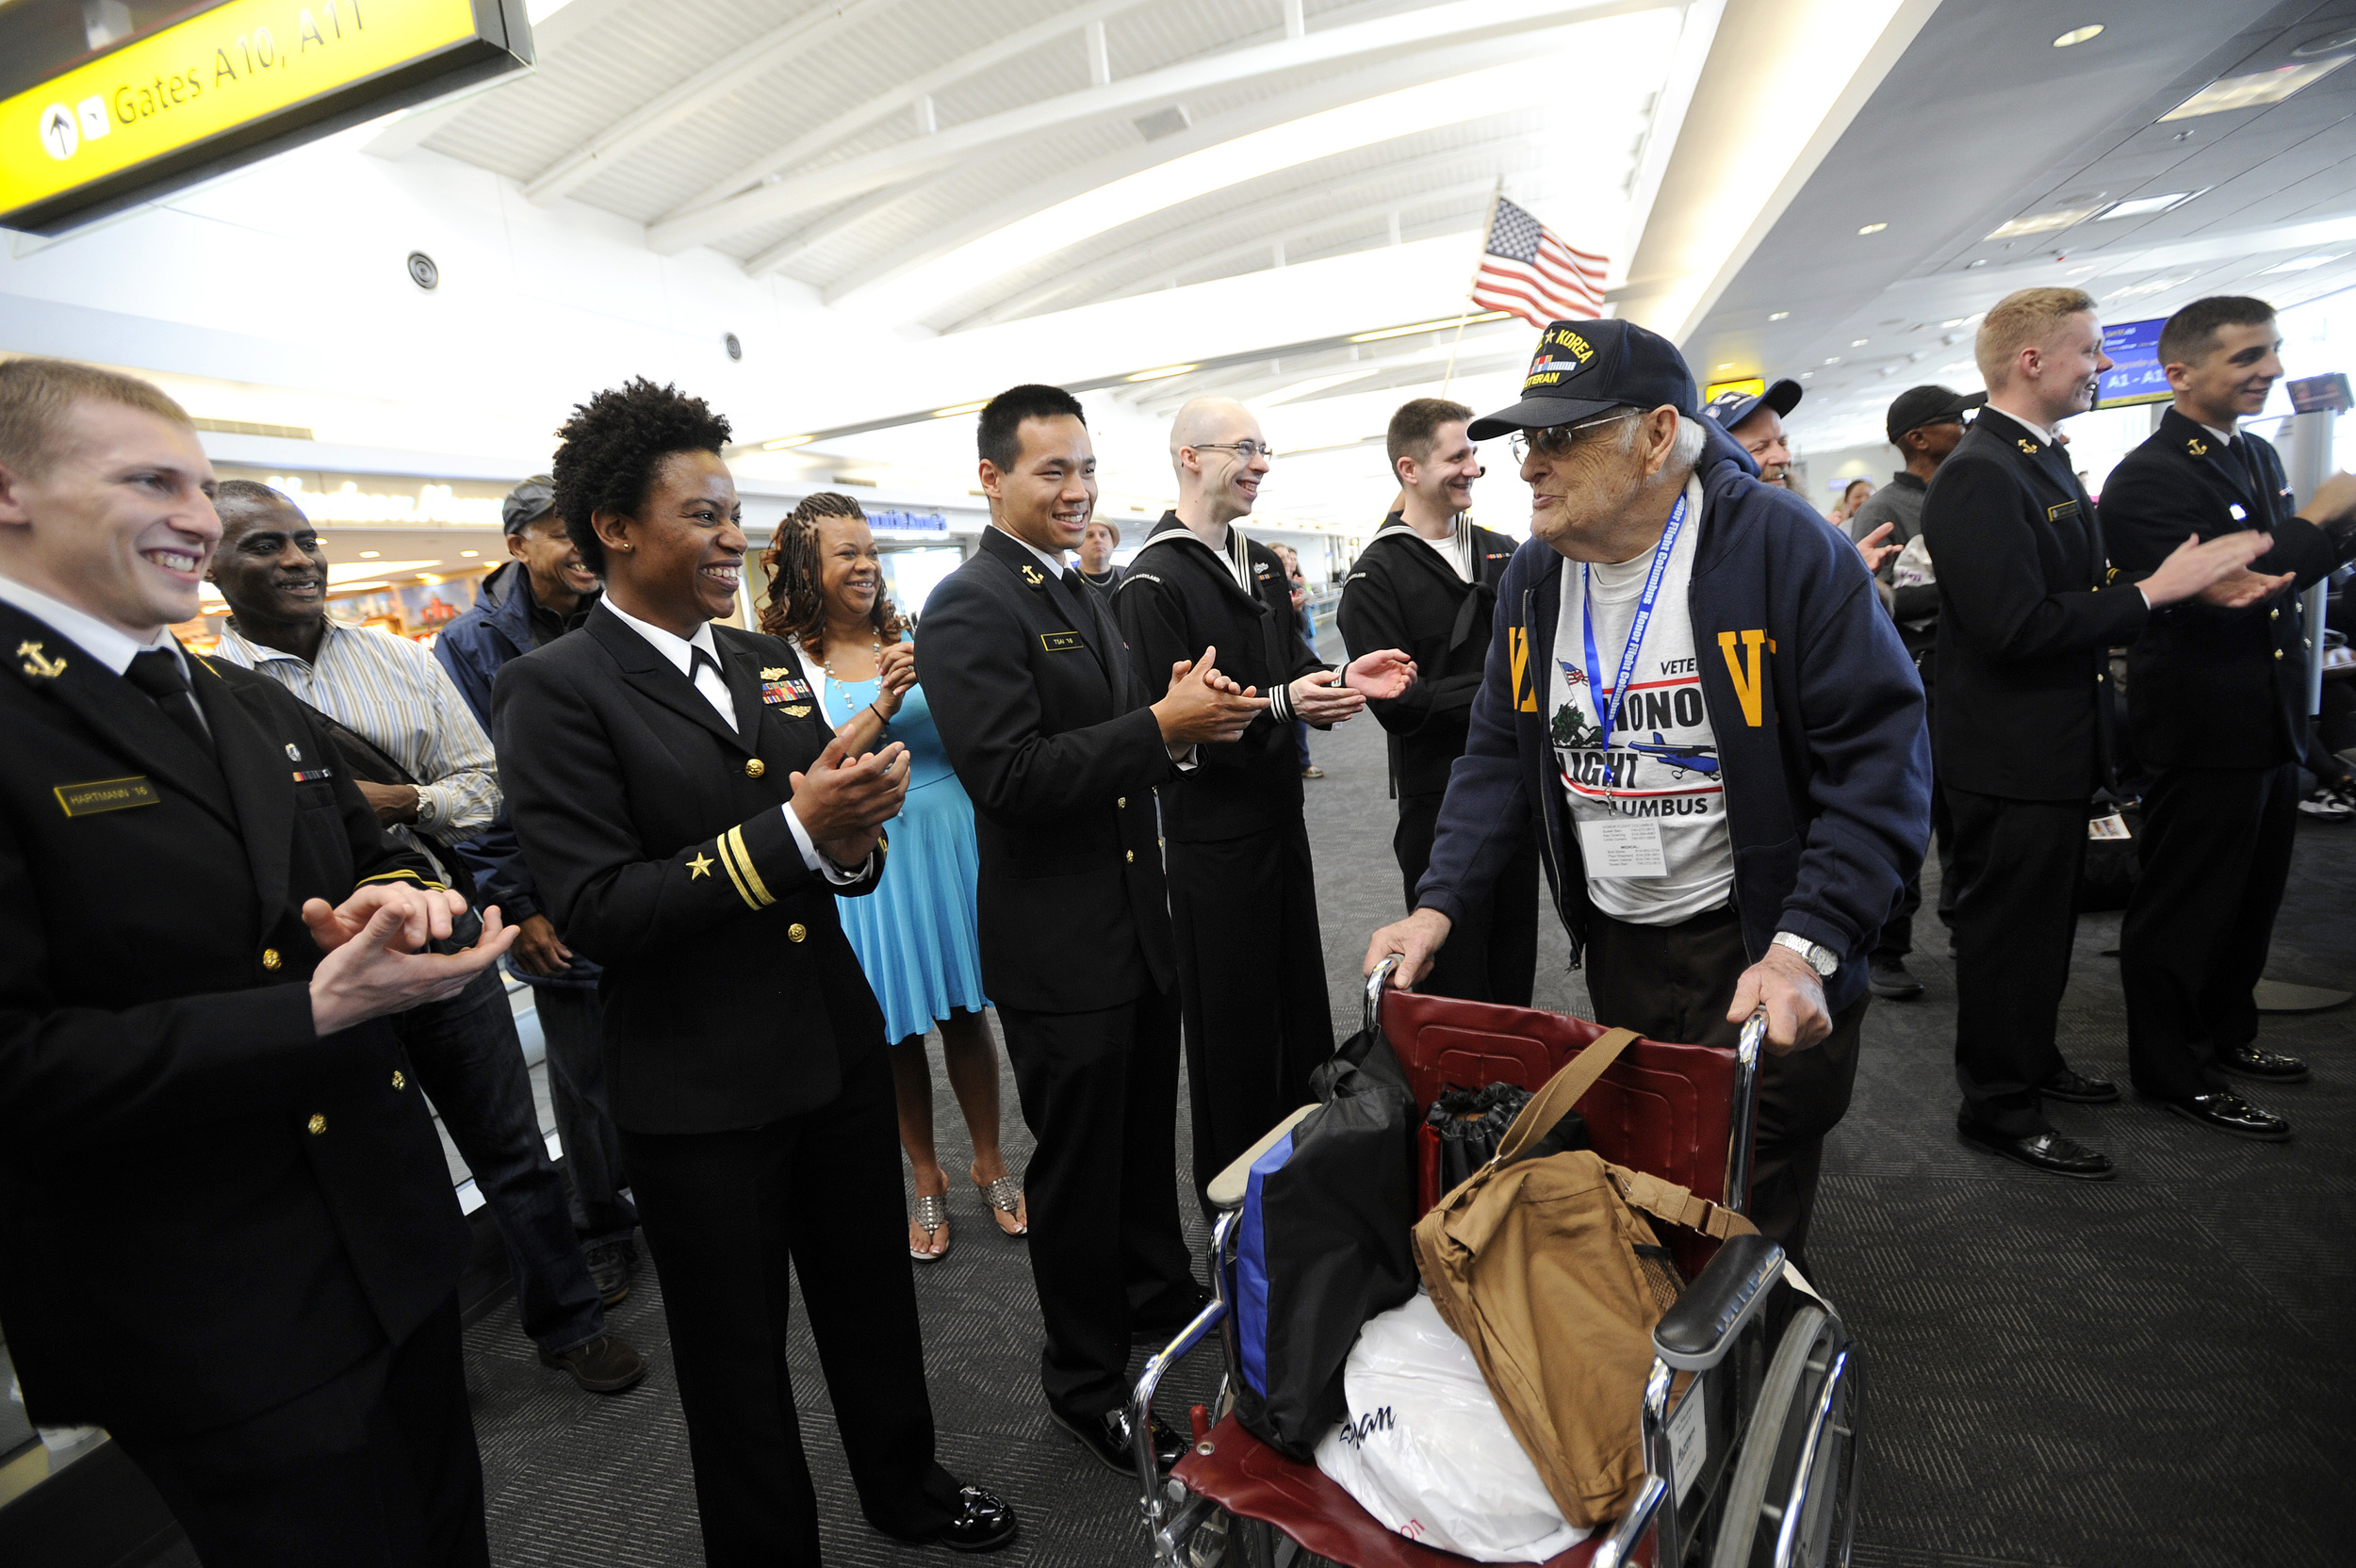 On Saturday, April 18 Chillicothe veteran Paul Thurman and other veterans were greeted by a huge crowd after landing at Baltimore-Washington International Airport during the Honor Flight  trip to Washington, D.C.